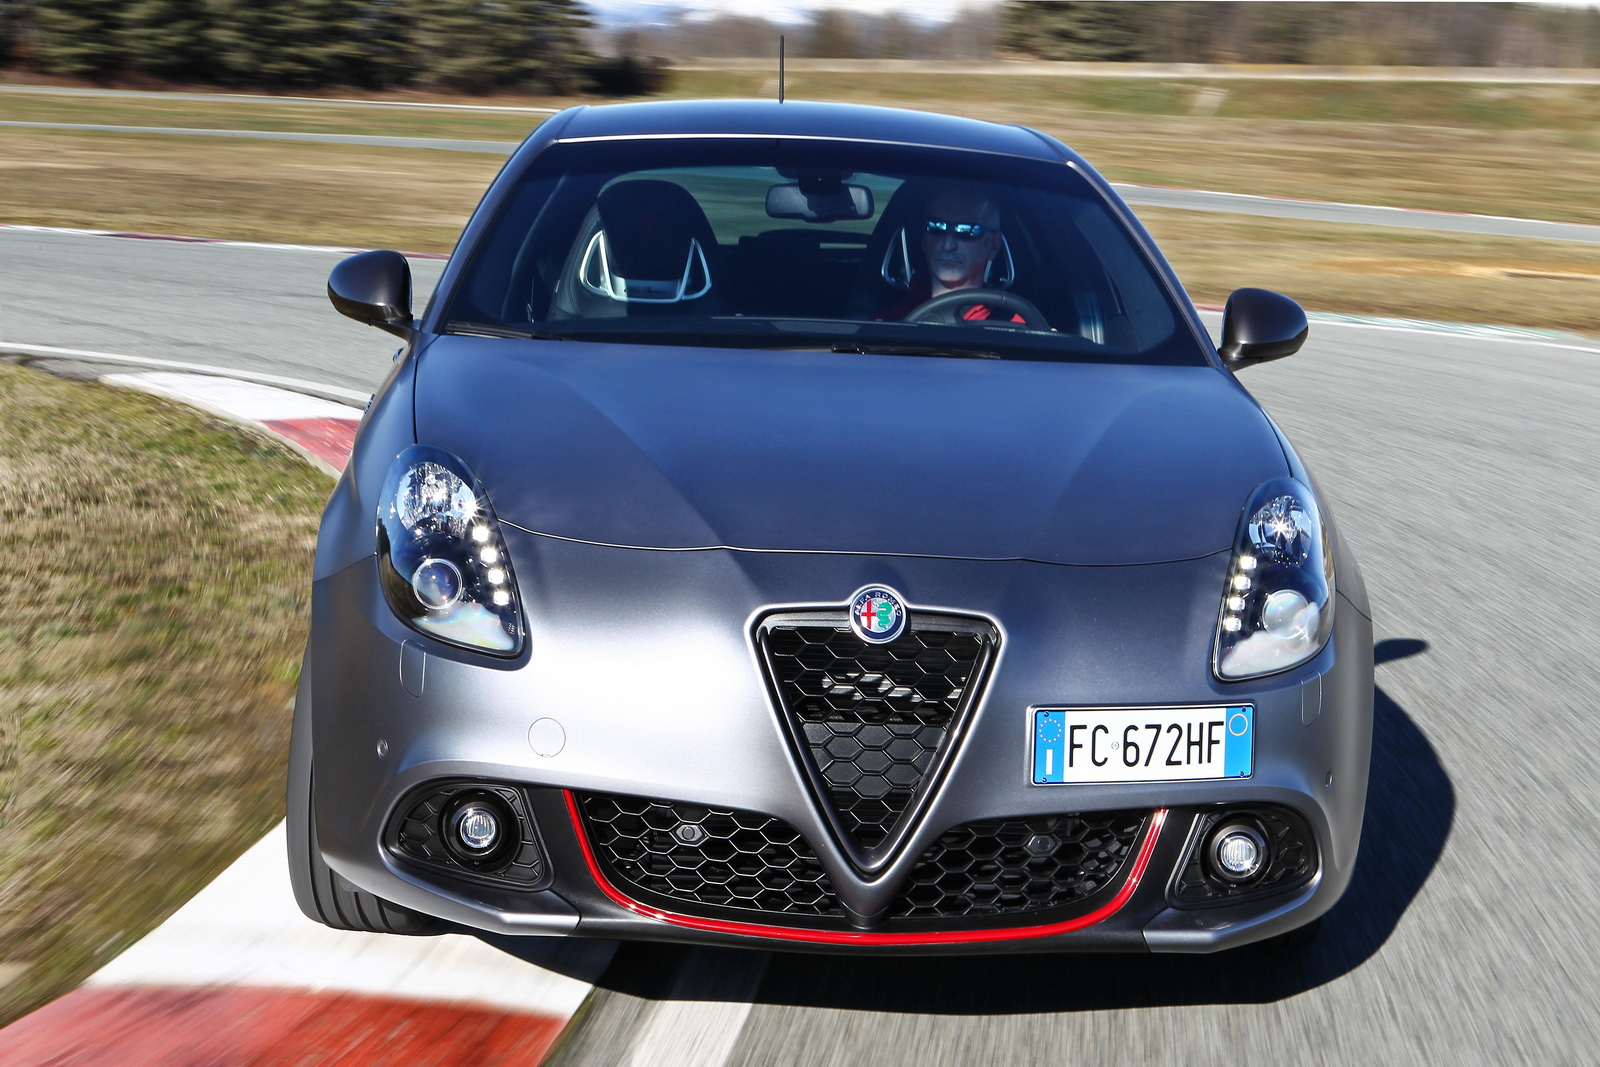 alfa romeo s updated giulietta and mito want a piece of giulia s glory. Black Bedroom Furniture Sets. Home Design Ideas